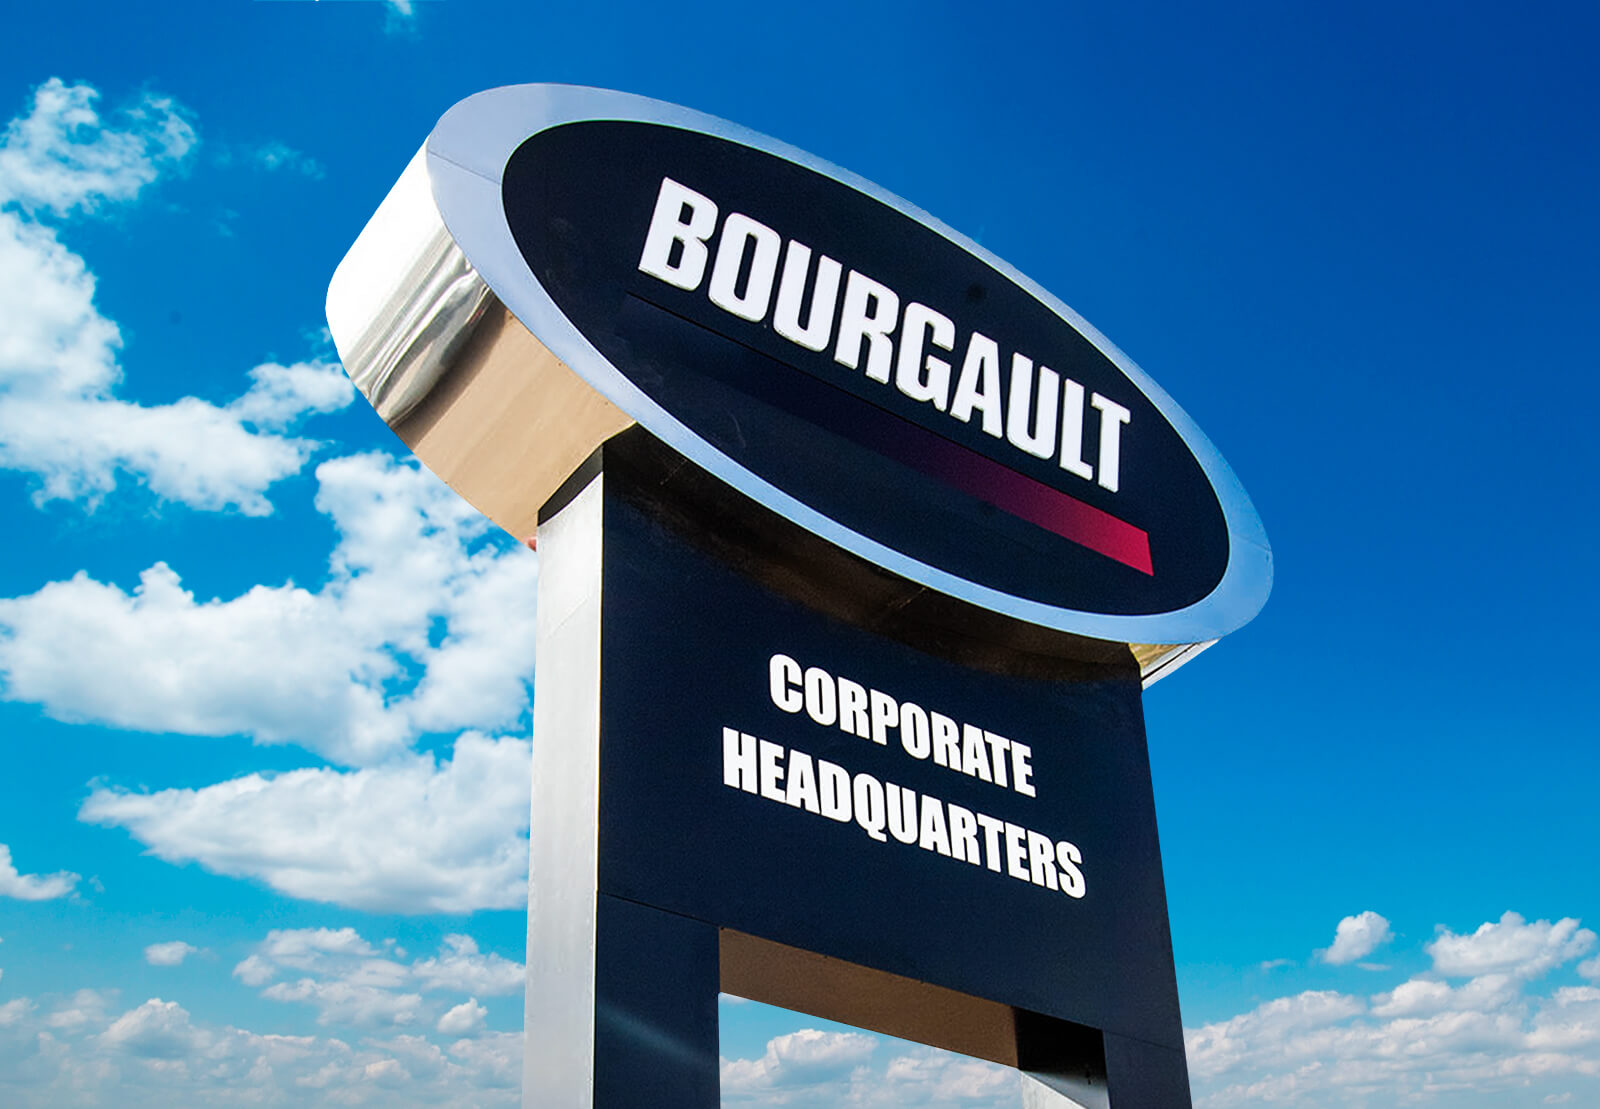 High rising pylon sign for the Bourgault Corporate headquarters.